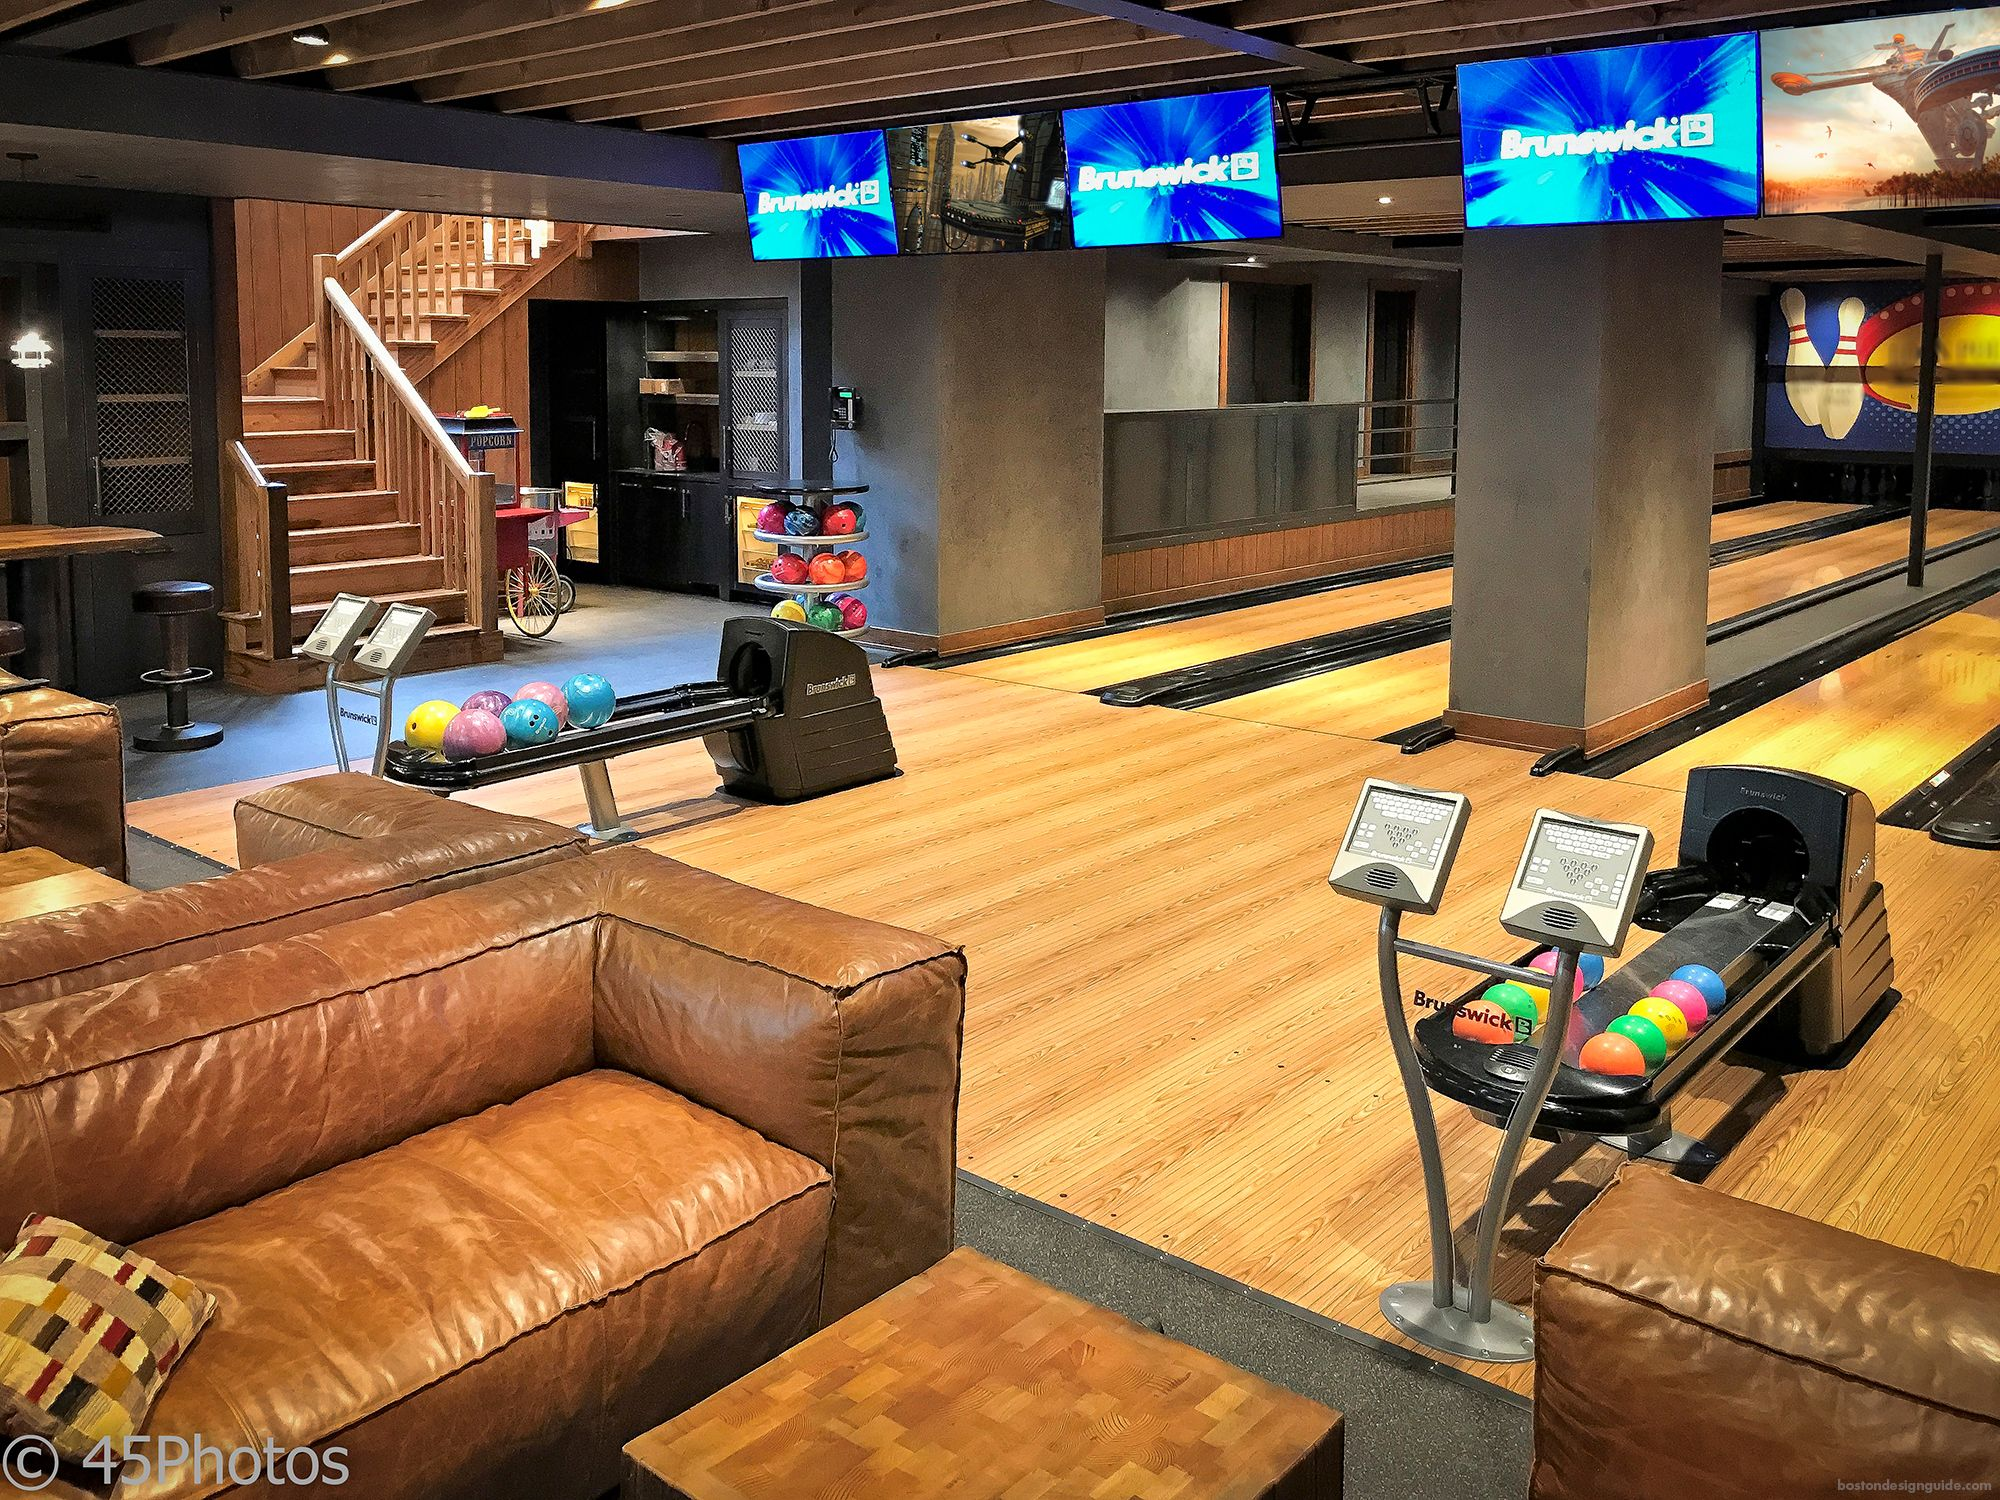 The Playhouse Includes A Gaming Room Toddler Play Area